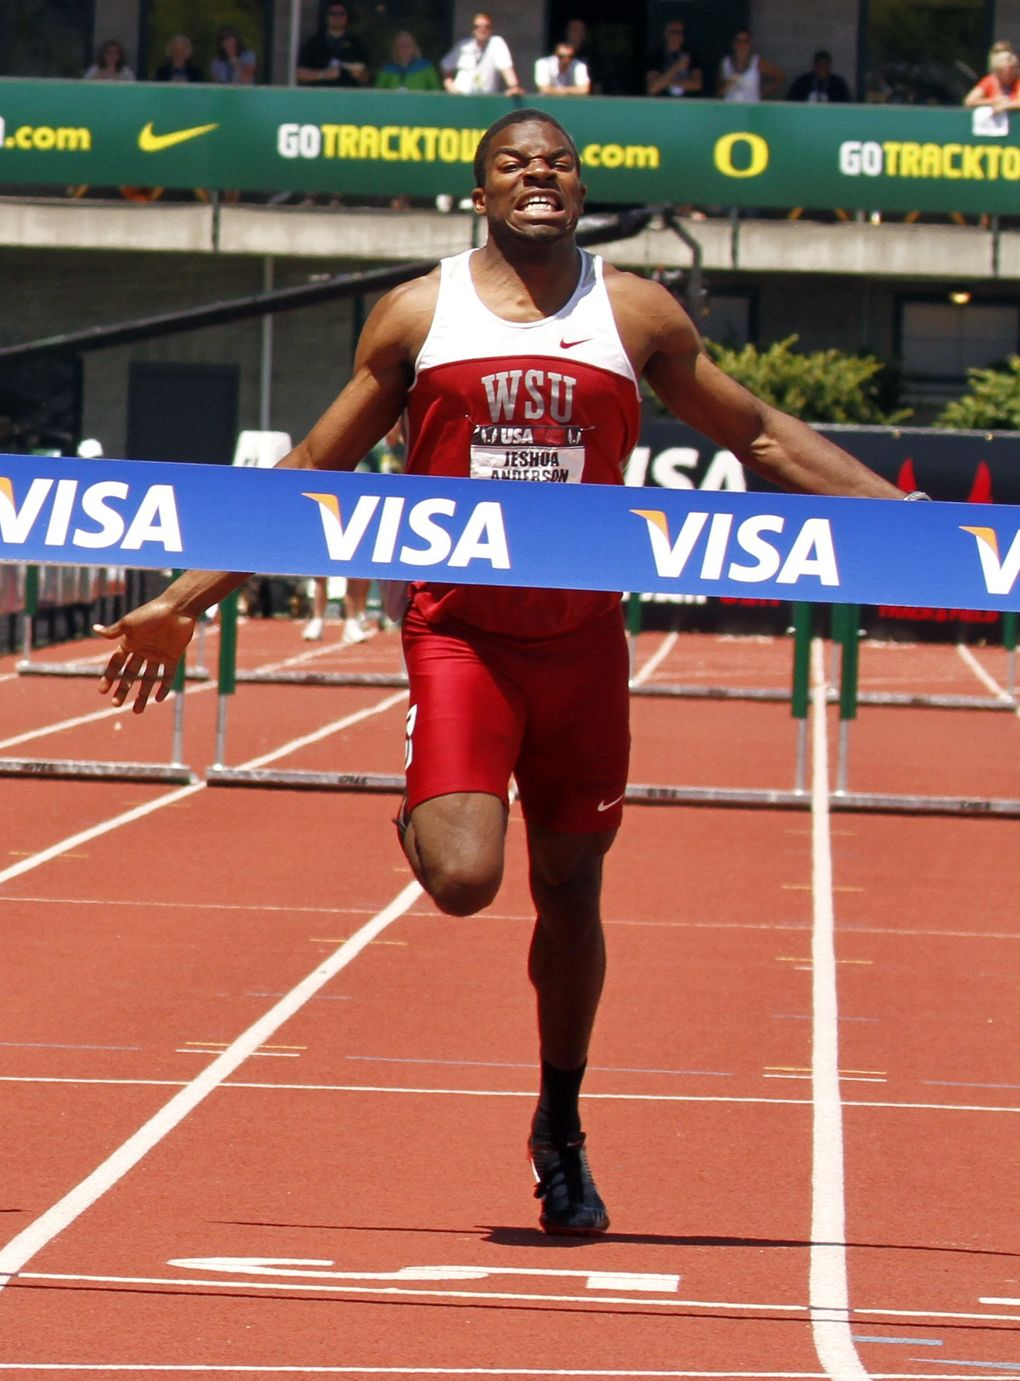 Jeshua Anderson wins the 400-meter hurdles at the 2011 U.S. track and field championships. In April 2012, he pulled his hamstring and the injury kept troubling him. (Don Ryan/ASSOCIATED PRESS)